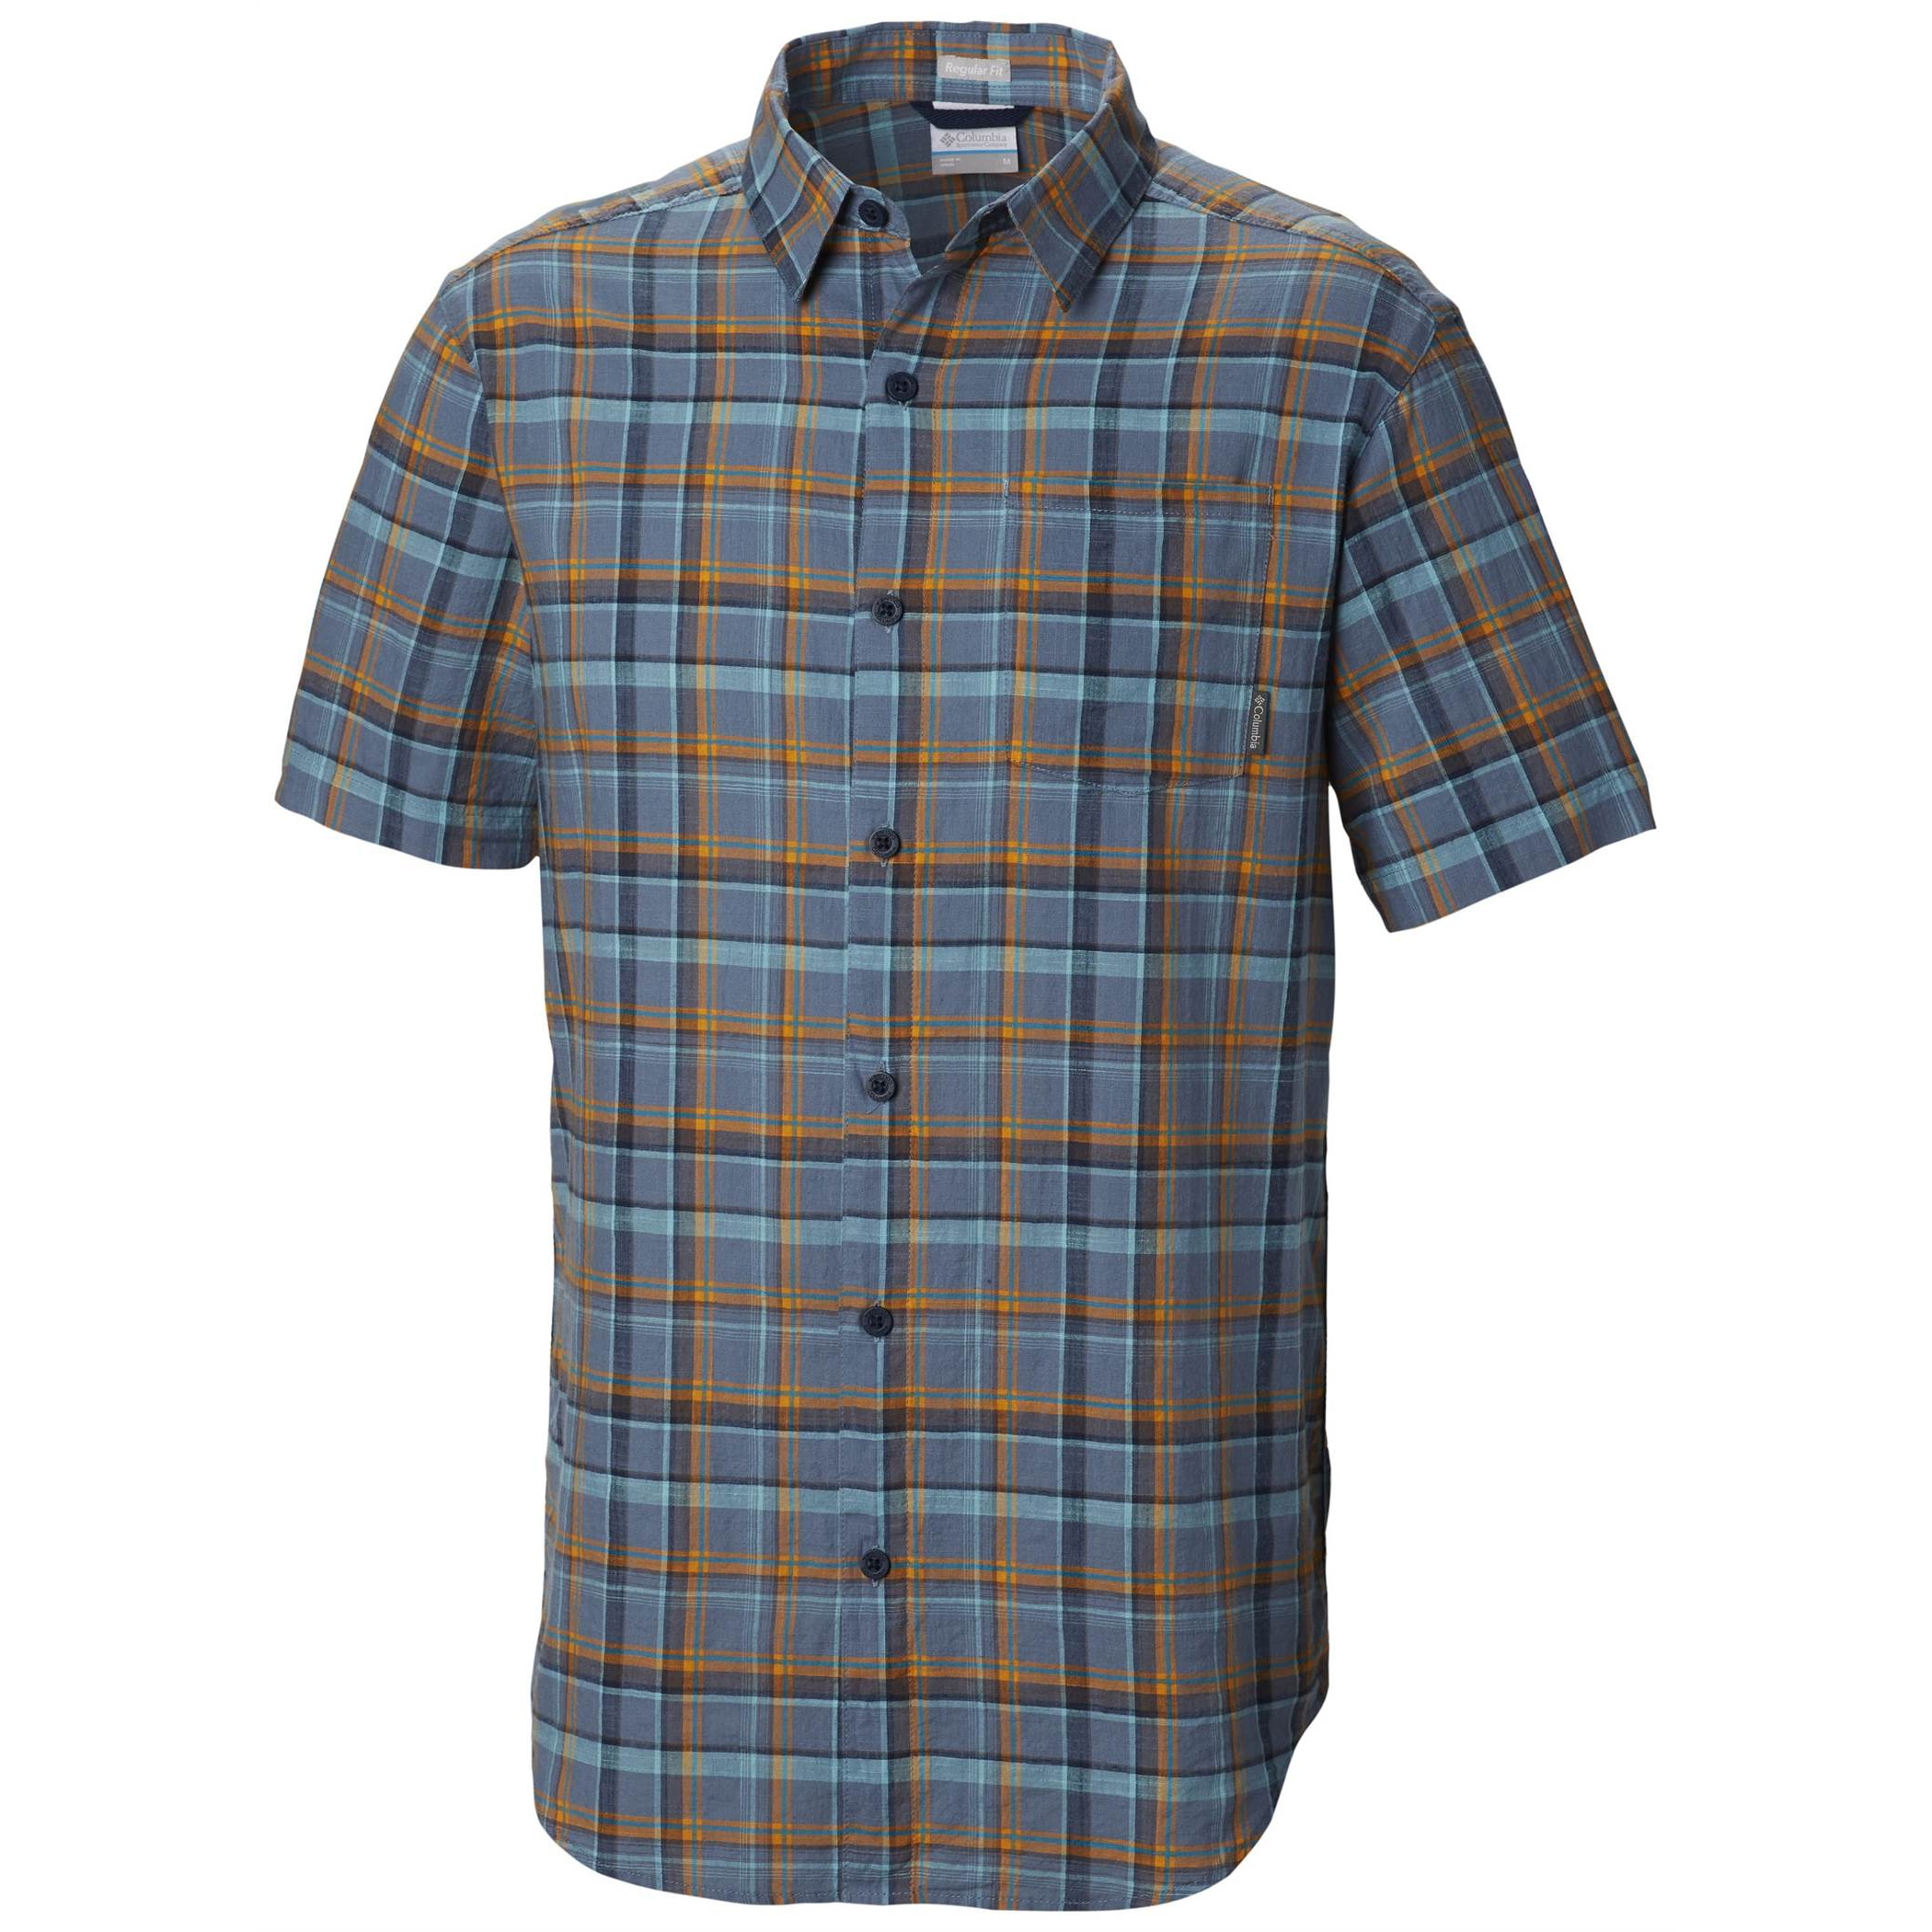 Under Exposure YD Shirt Short Sleeve - Men's